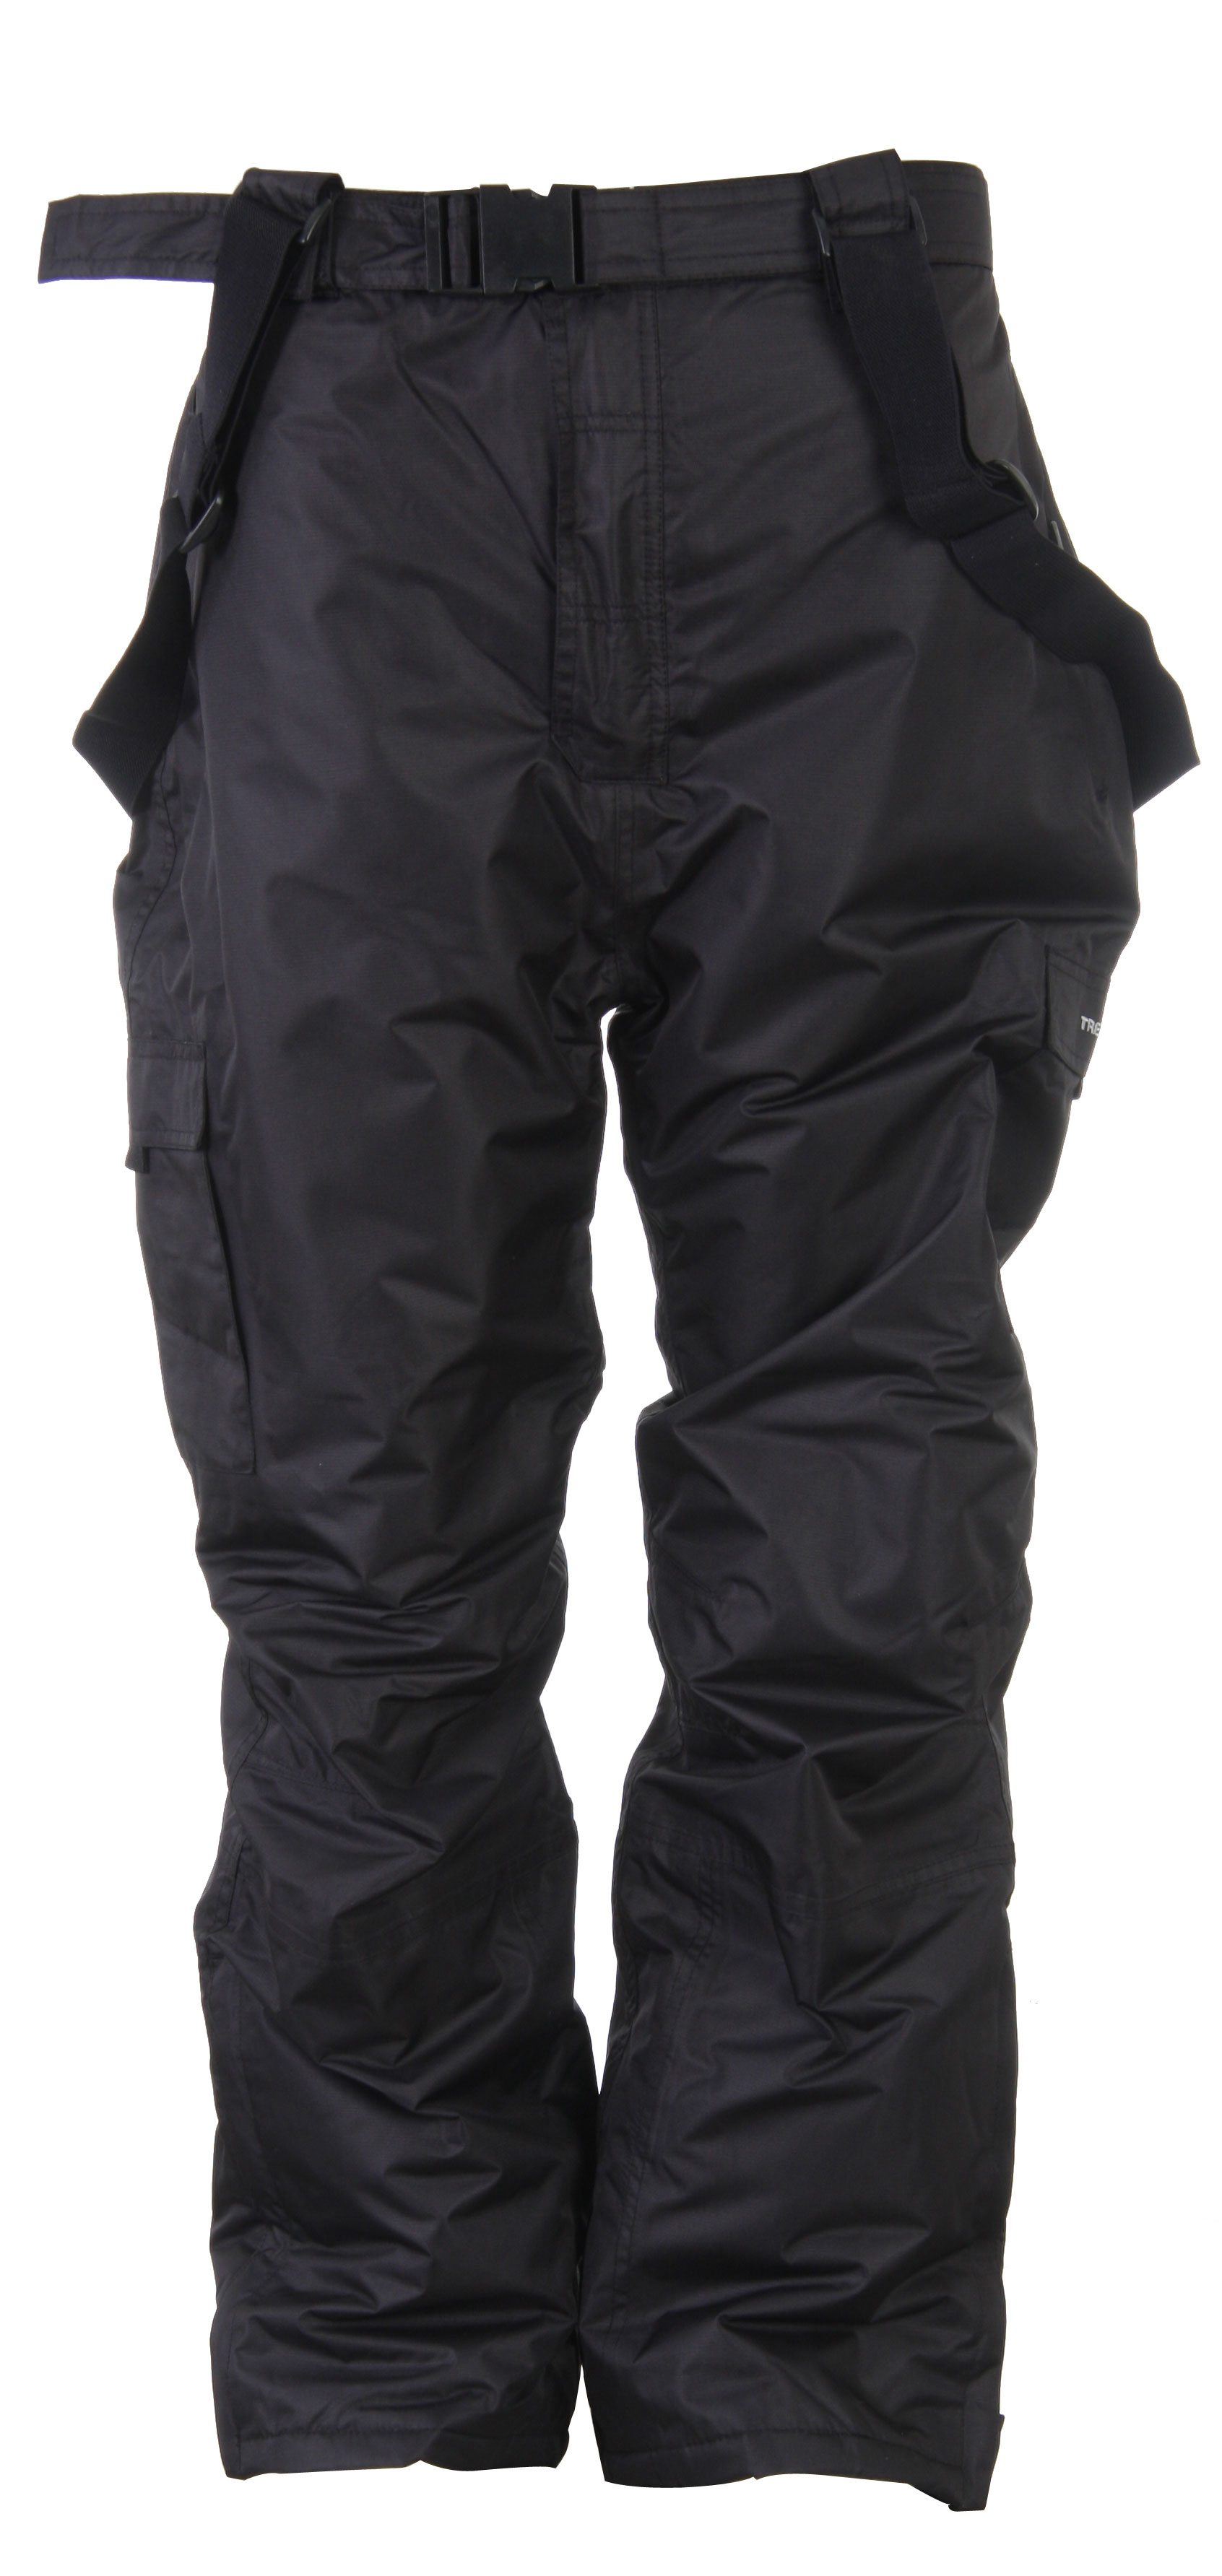 Ski These Men's Trespass Snowboard Pants will keep you warm while skiing and they will protect you from the elements. Not only are they fashionable; they are also extremely versatile. They feature 3 zip pockets and well as 2 patch pockets and have a detachable braces belt. You'll be comfortable all day long in these pants due to their elasticized back which will keep you feeling free and comfortable. Windproof and waterproof, these pants will keep you dry and warm while you're shredding the hills.Key Features of the Trespass Seige Plus Ski Pants: 5,000mm Waterproof Insulated 3 zip pockets 2 patch pockets Detachable braces belt Side leg ankle zip with facing Articulated knee darts Elasticized back Windproof Taped seams - $44.95